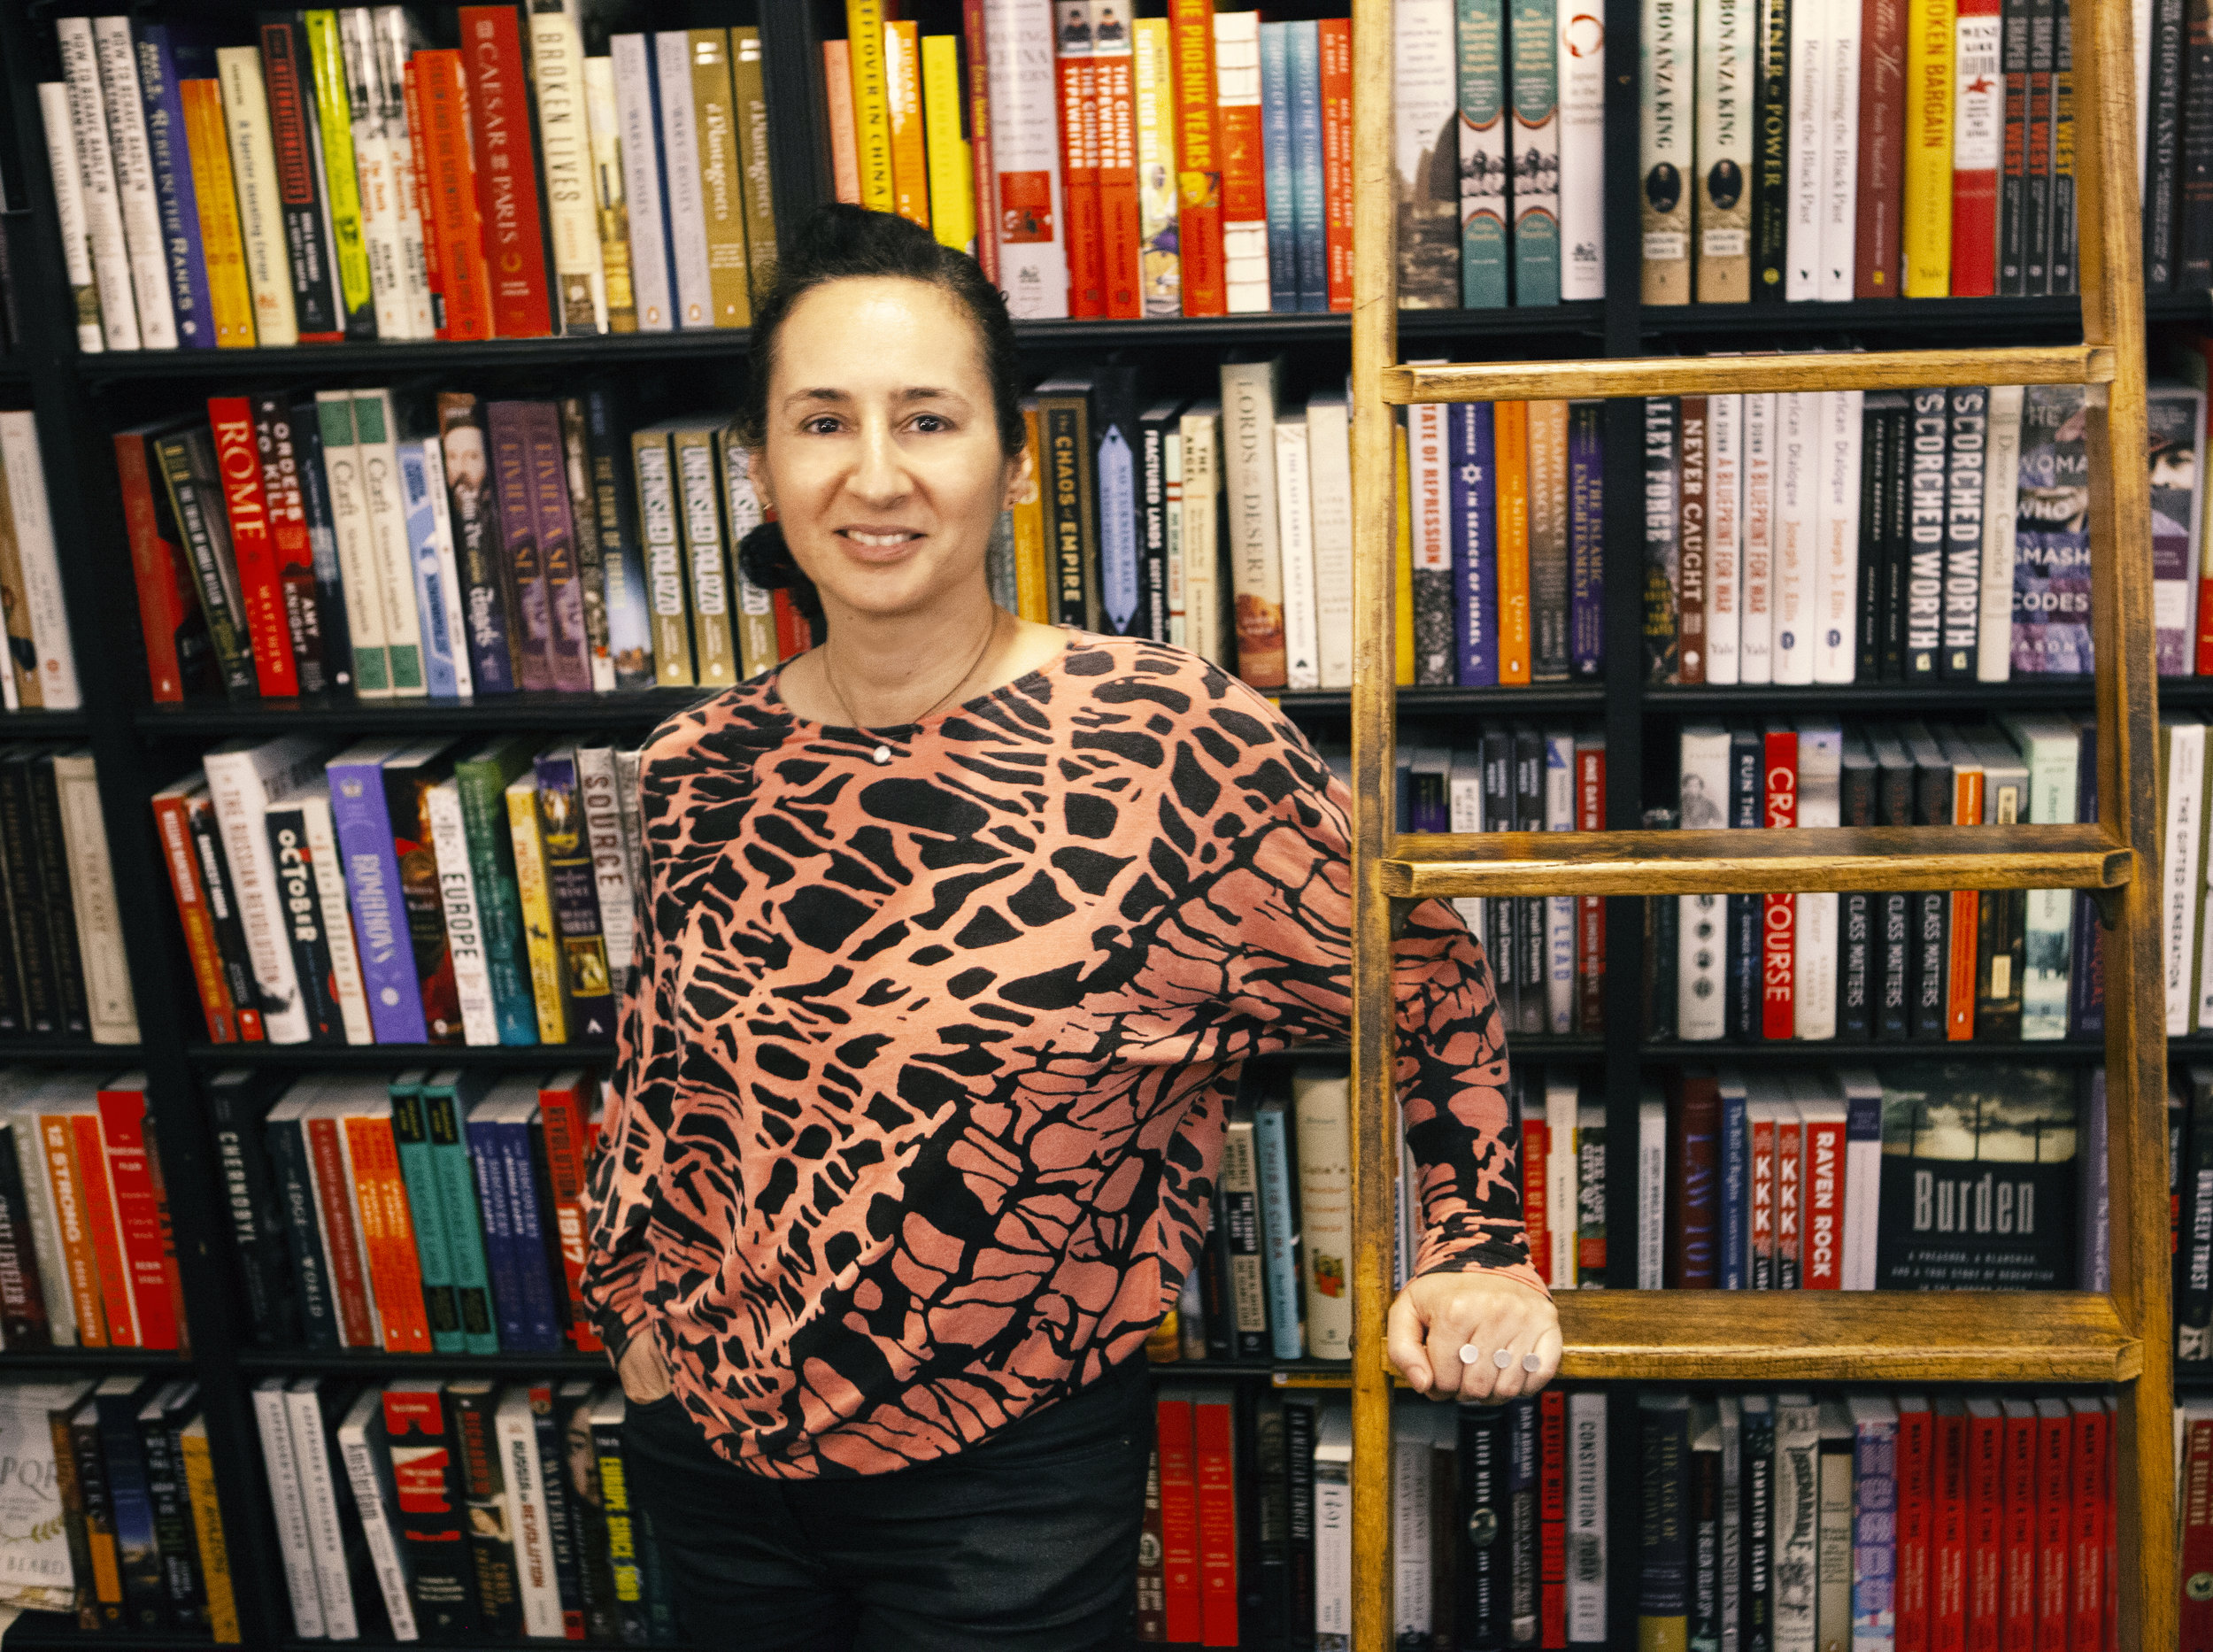 Ysanne in Los Angeles for the launch of Vegetable Cakes at Book Soup - Photo credit: Iggi Oggard, January 2019